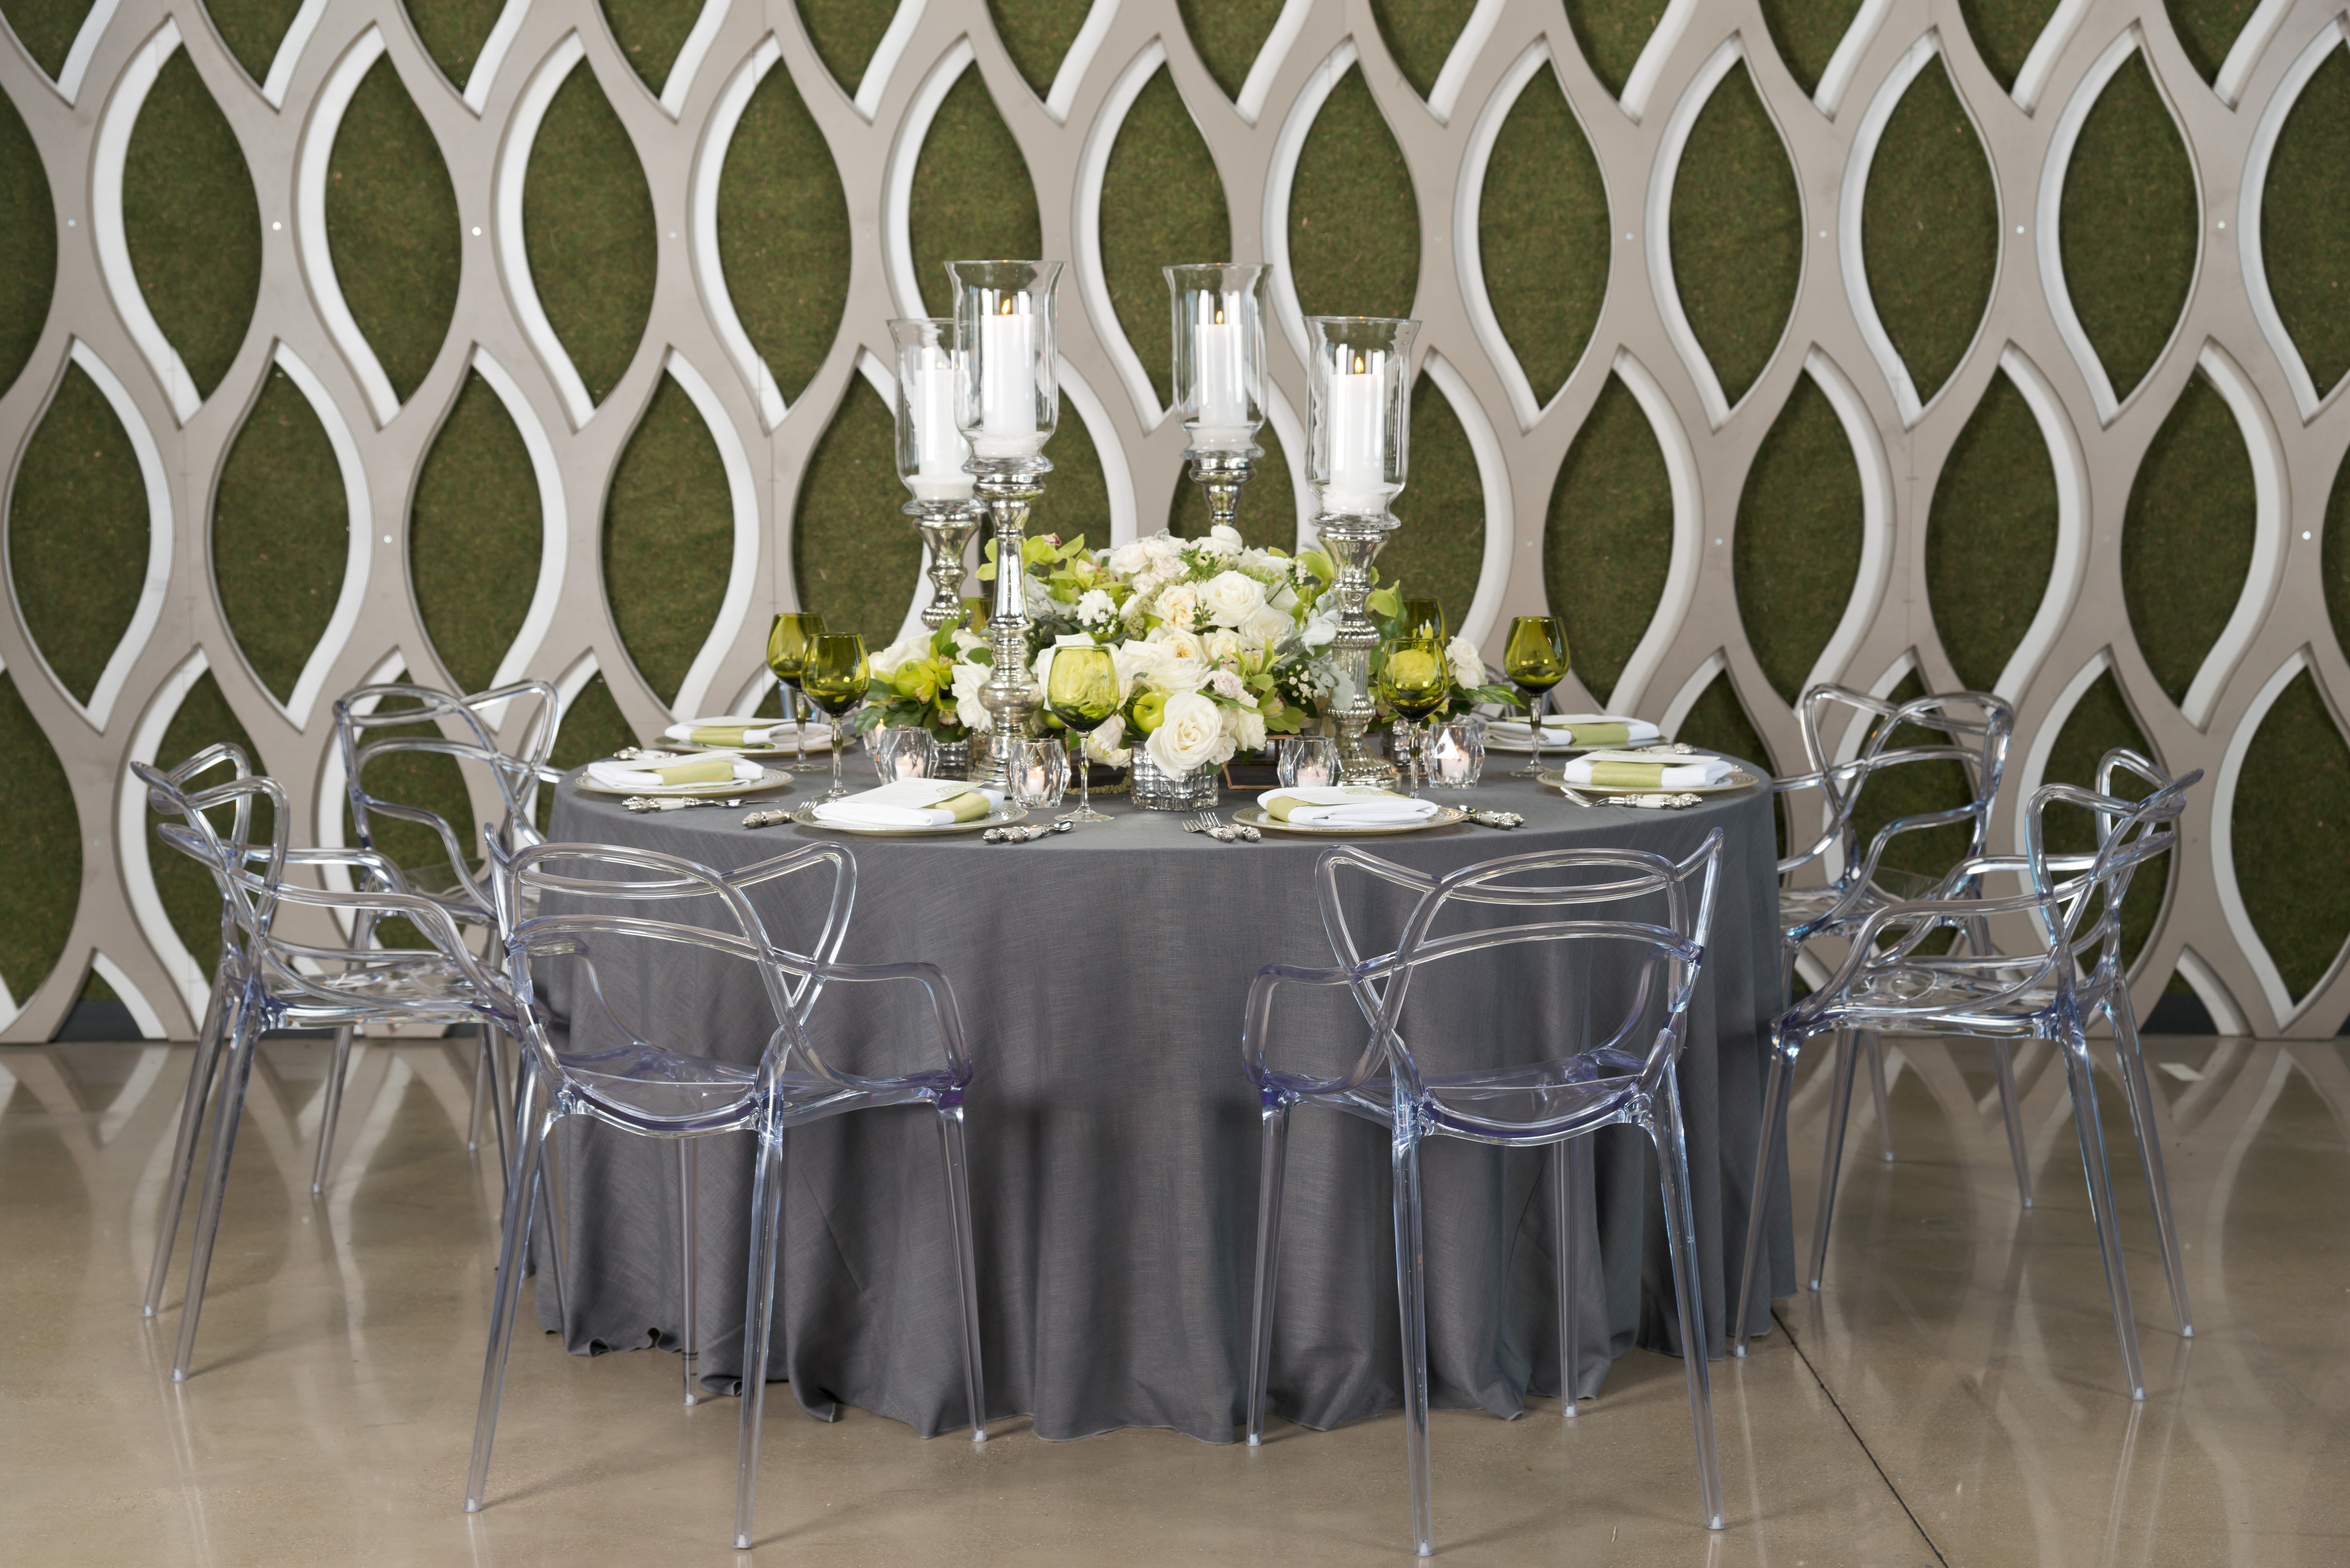 BBJ Linen Everlast Kehoe Collection - Steel Brimble Tablescape